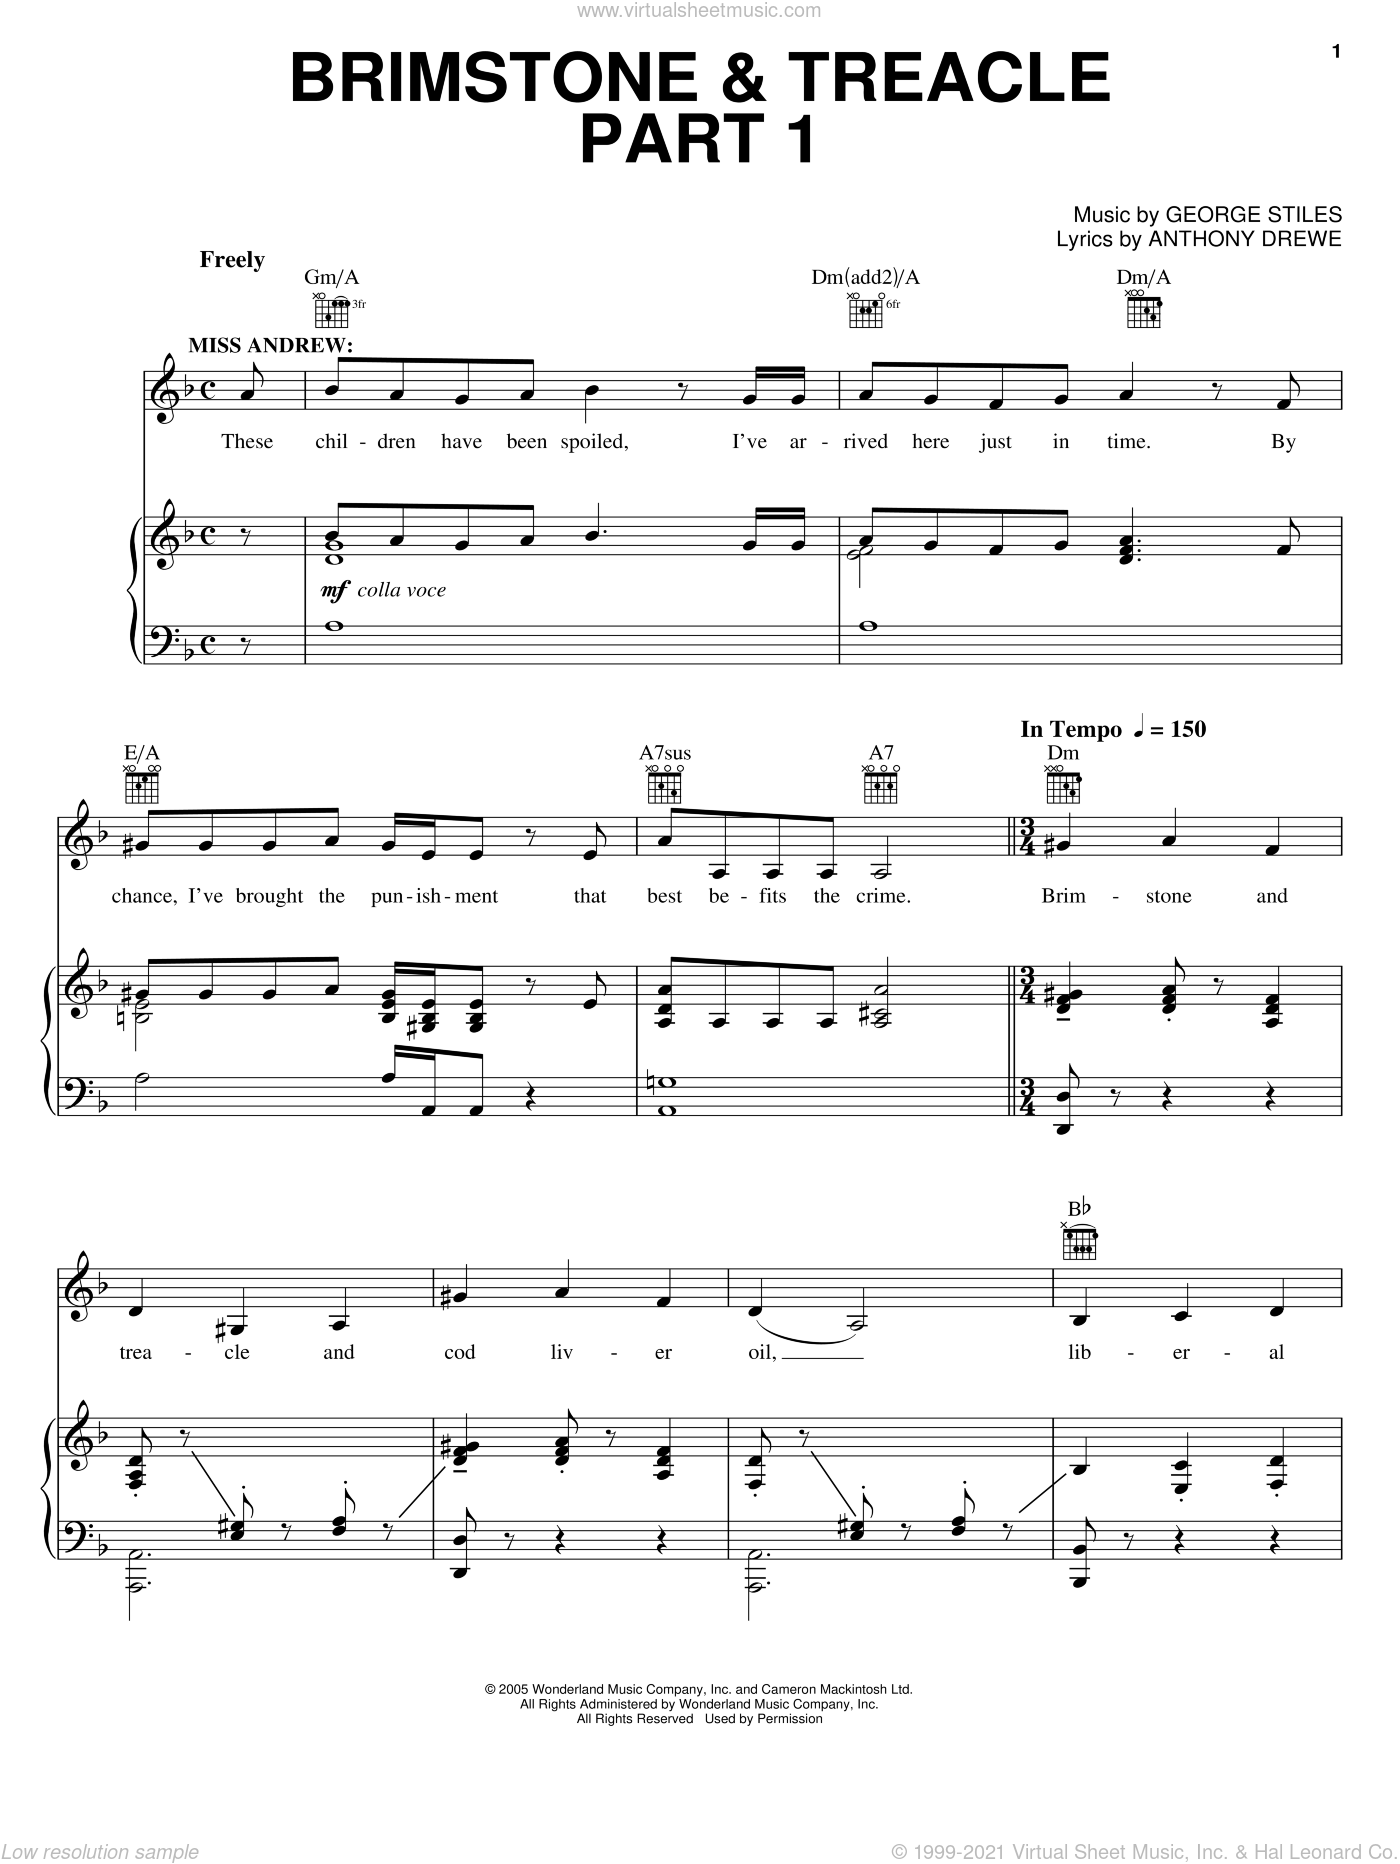 Treacle Part 1 sheet music for voice, piano or guitar by George Stiles